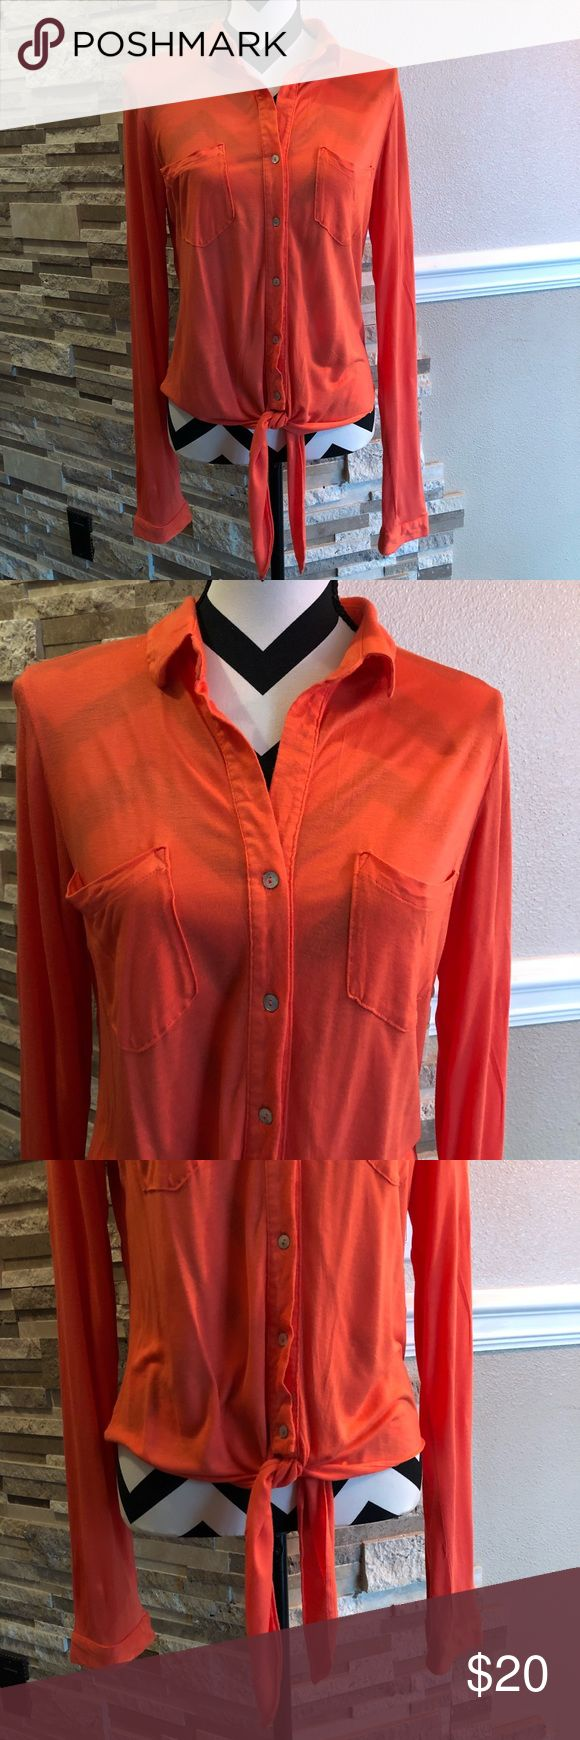 531d8849050 Liz Claiborne Sleeveless Split Crew Neck Woven Blouse – Rockwall Auction